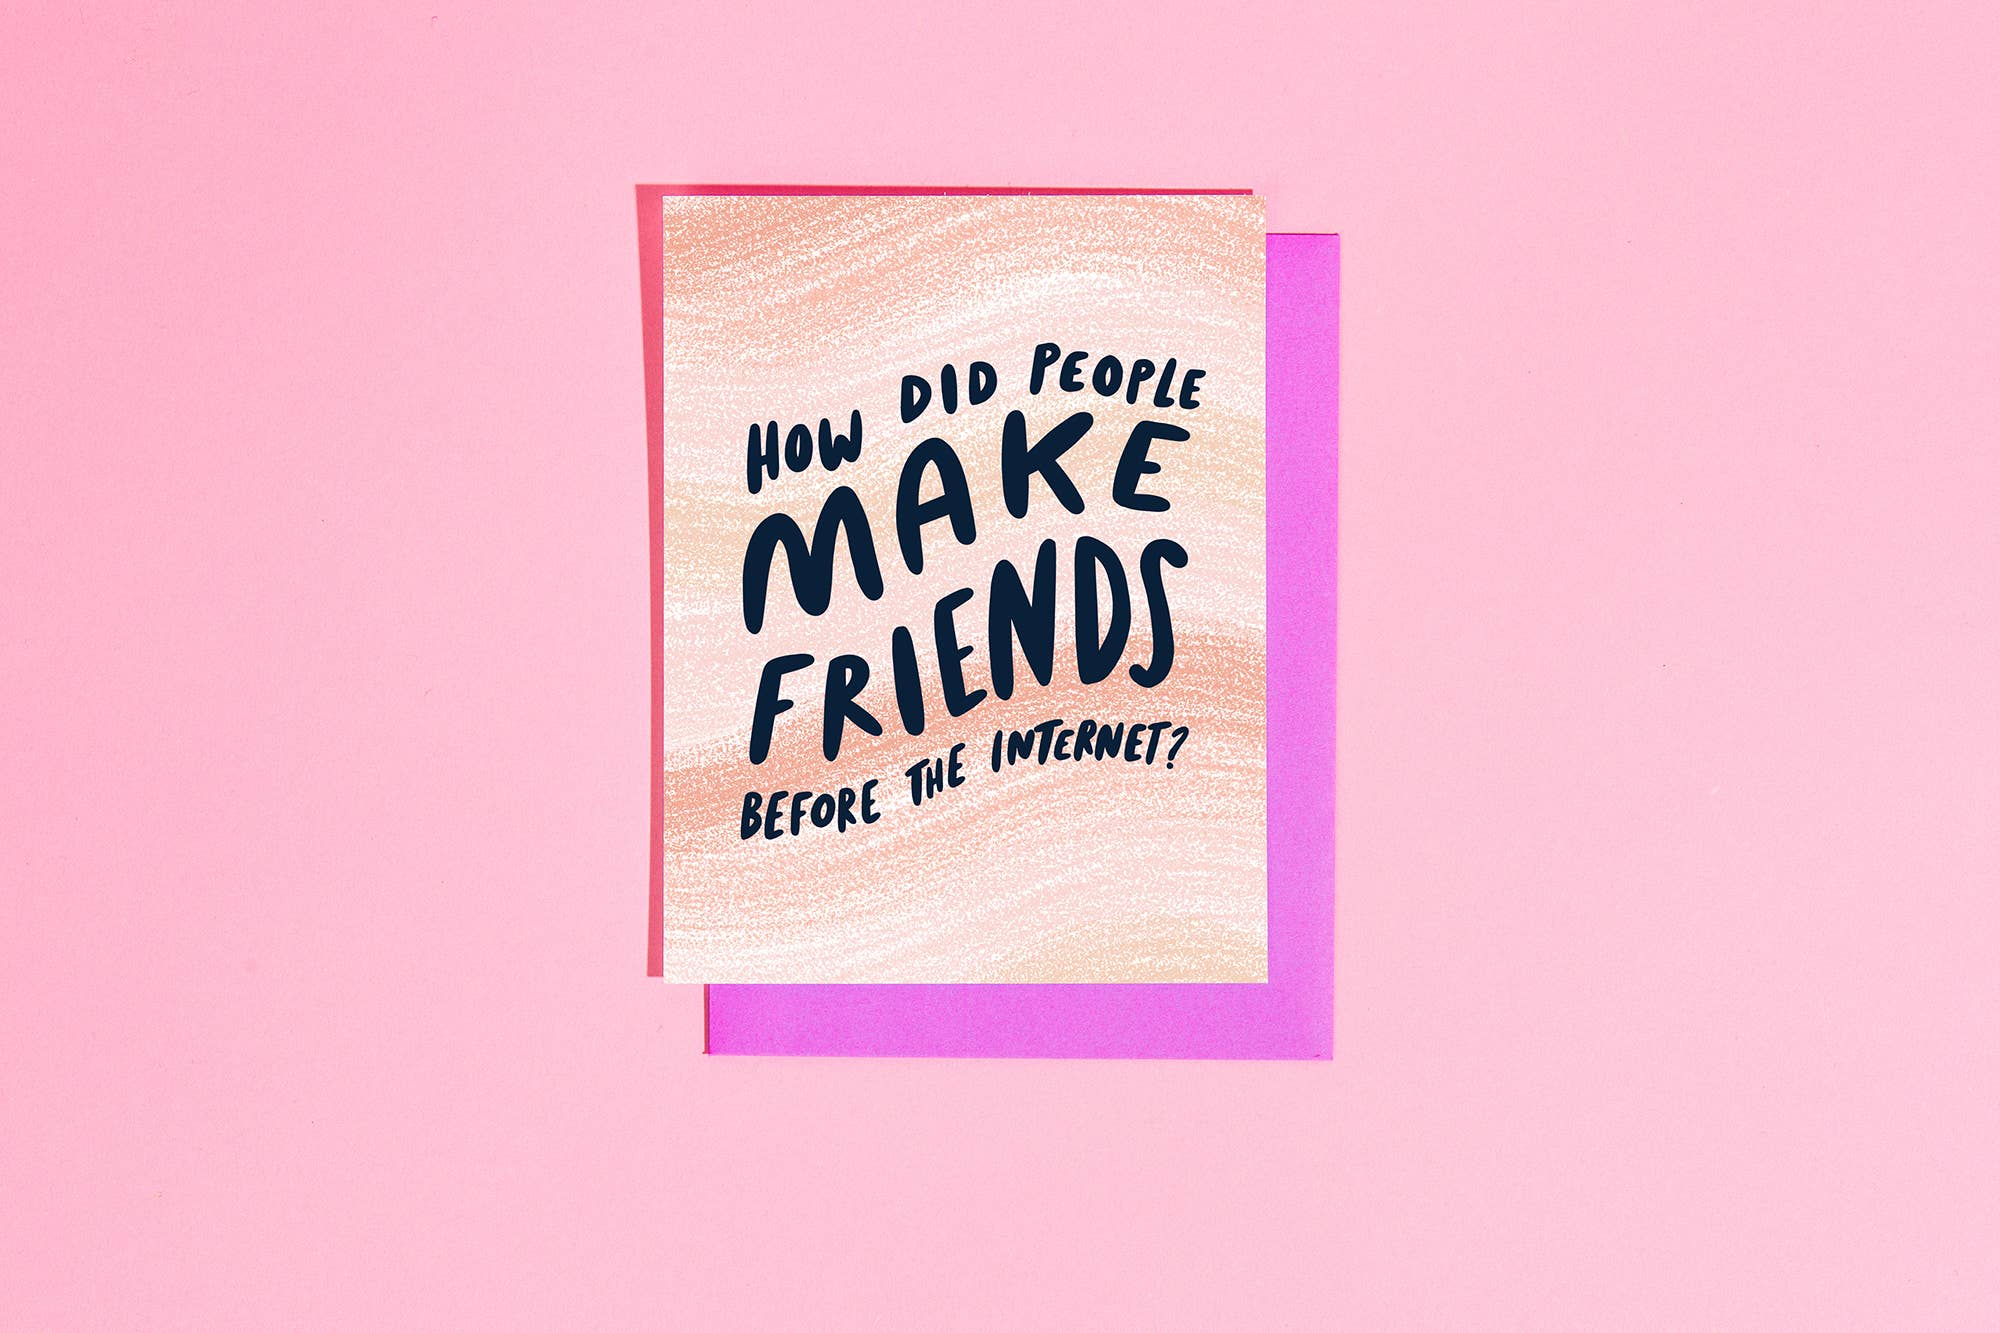 How did people make friends before the internet? card